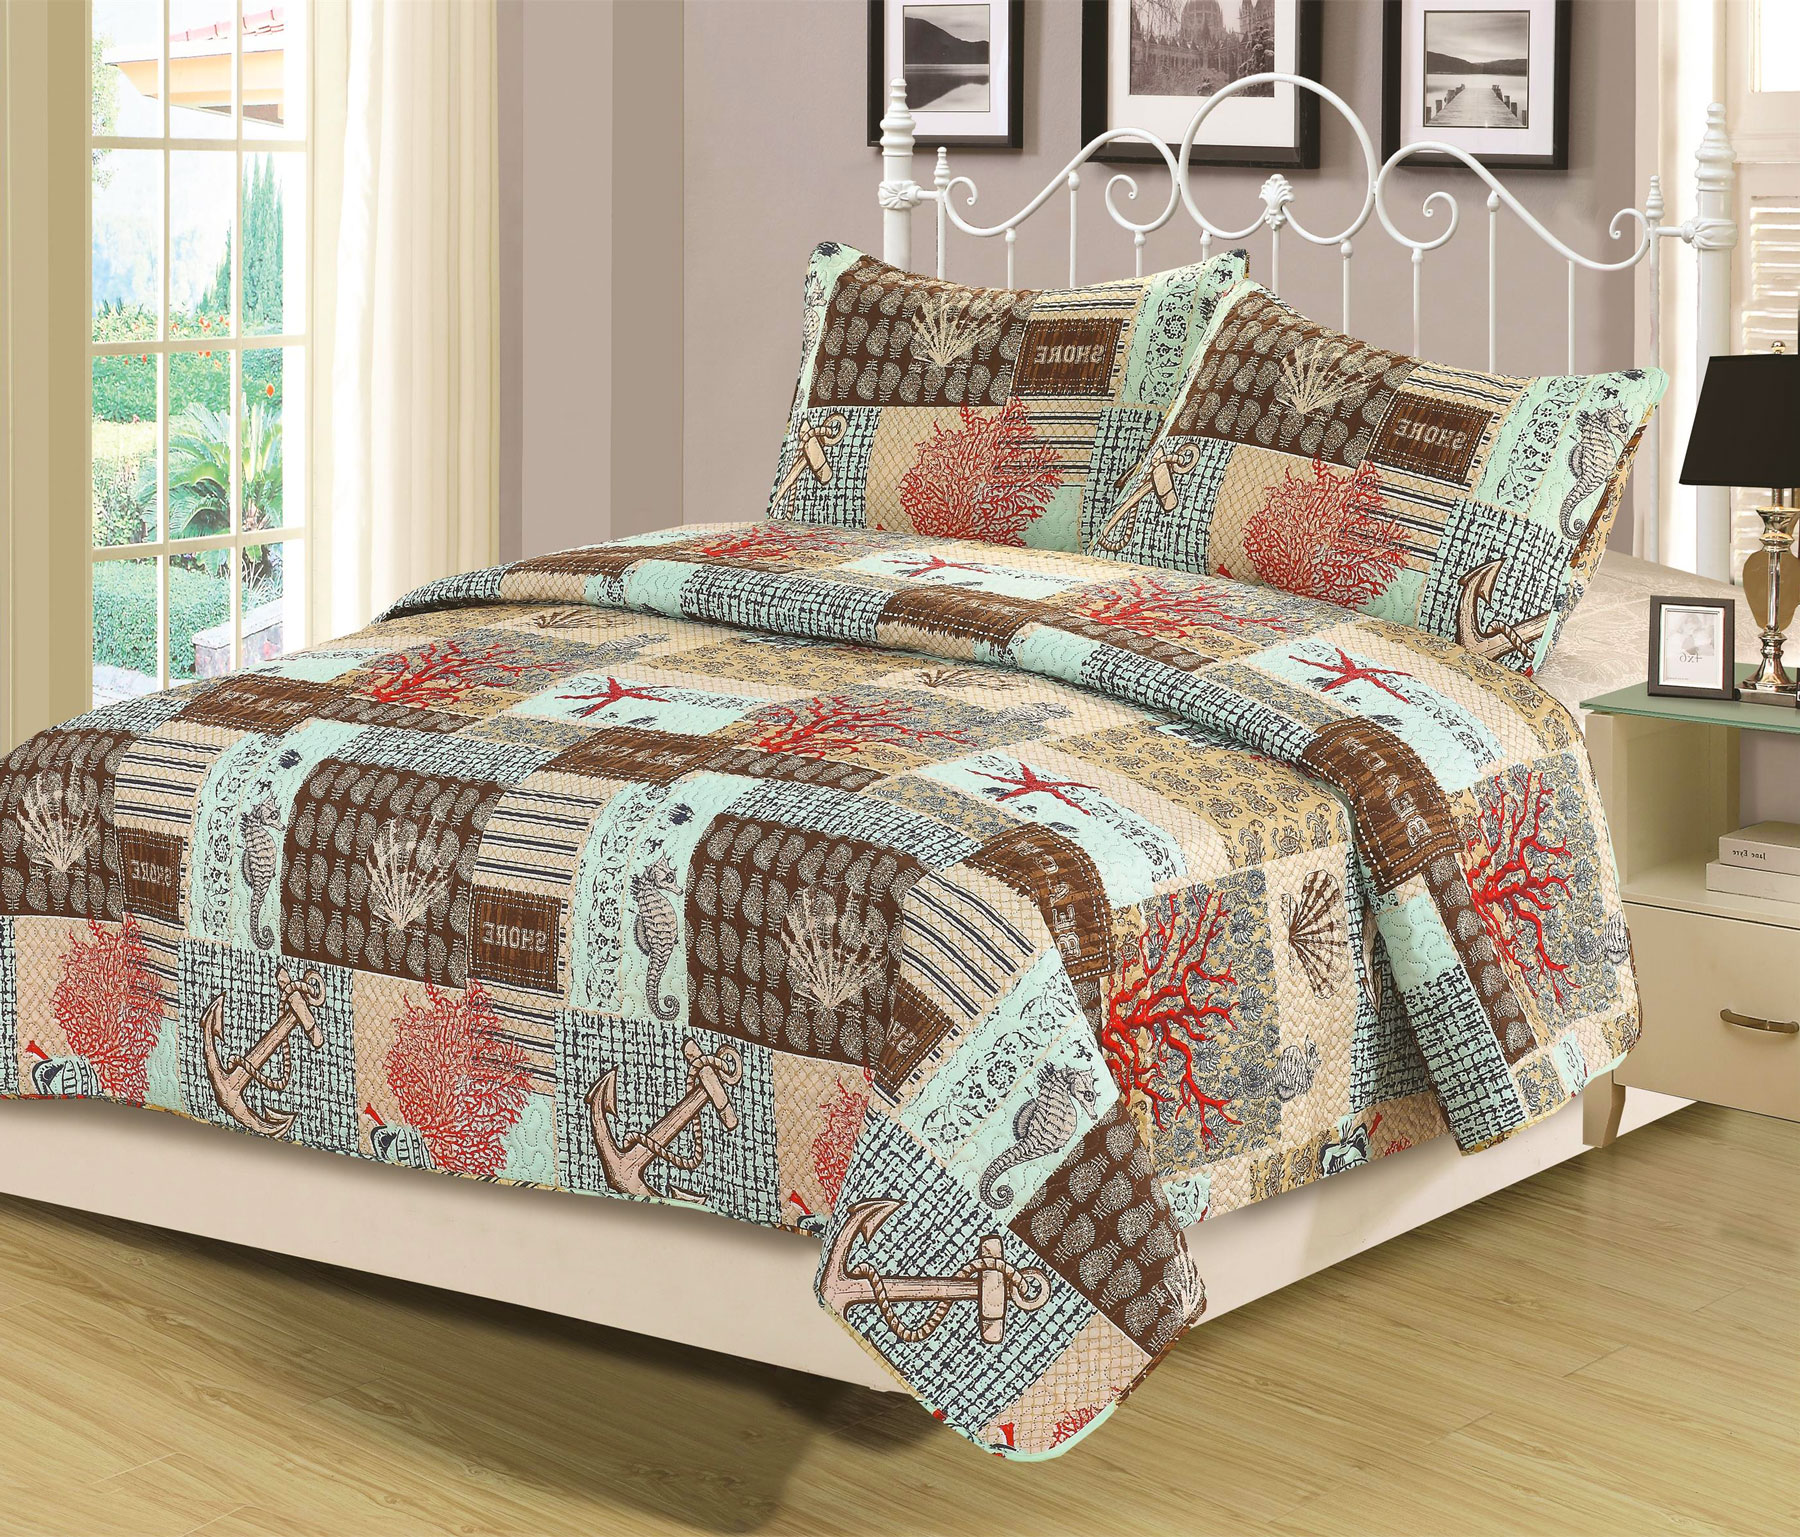 Queen Quilt Set 3 Piece Bedspread Coverlet Blue Nautical Anchor by HowPlumb